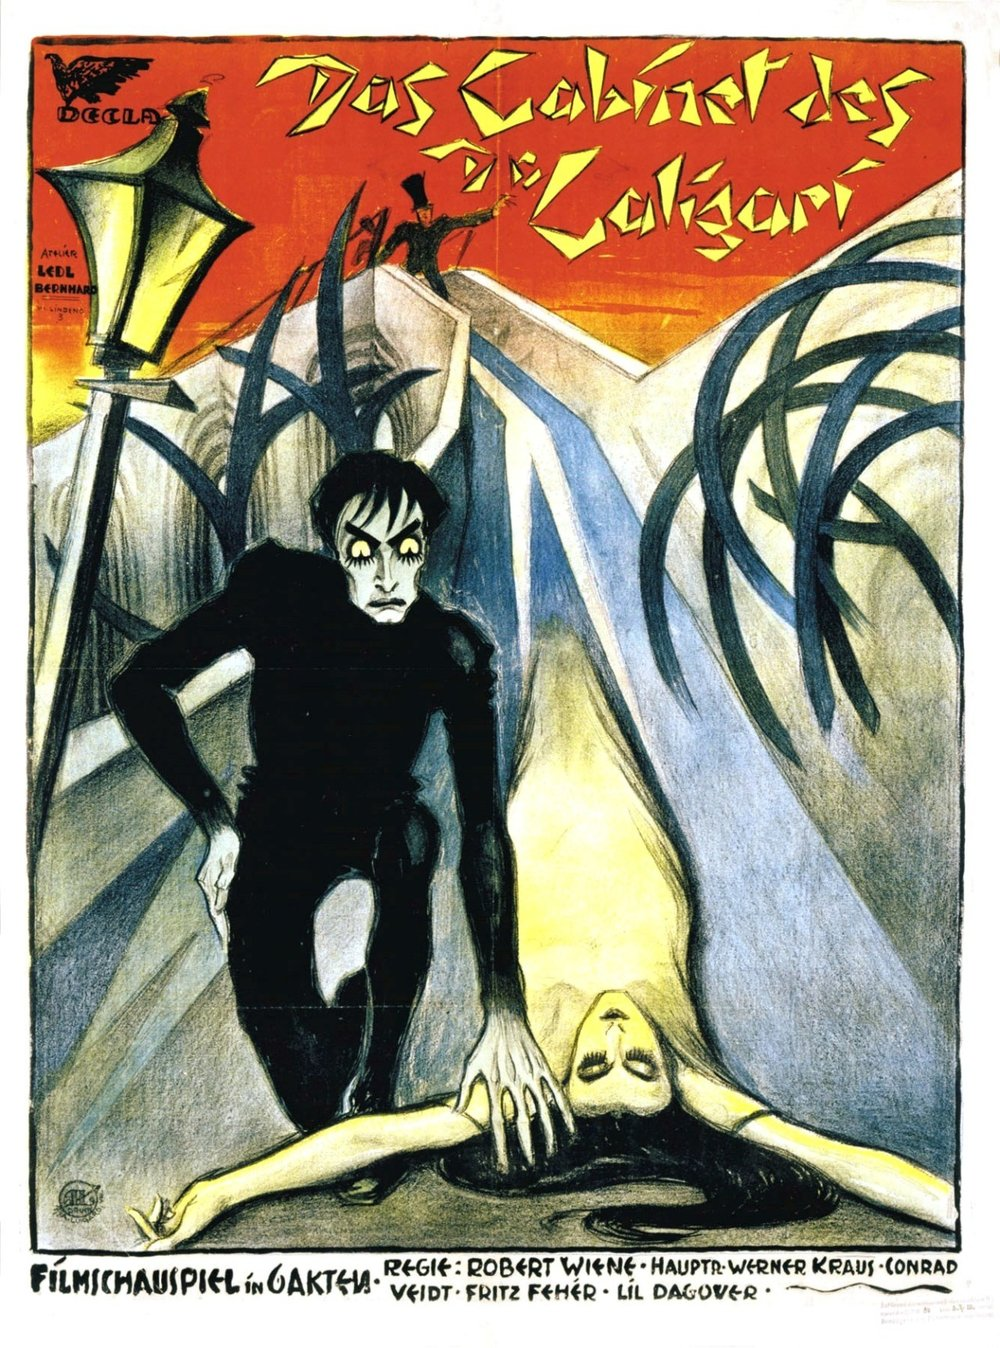 By Atelier Ledl Bernhard - http://blackholereviews.blogspot.fr/2012/05/cabinet-of-dr-caligari-1920-fundamental.html, Public Domain, https://commons.wikimedia.org/w/index.php?curid=19571390